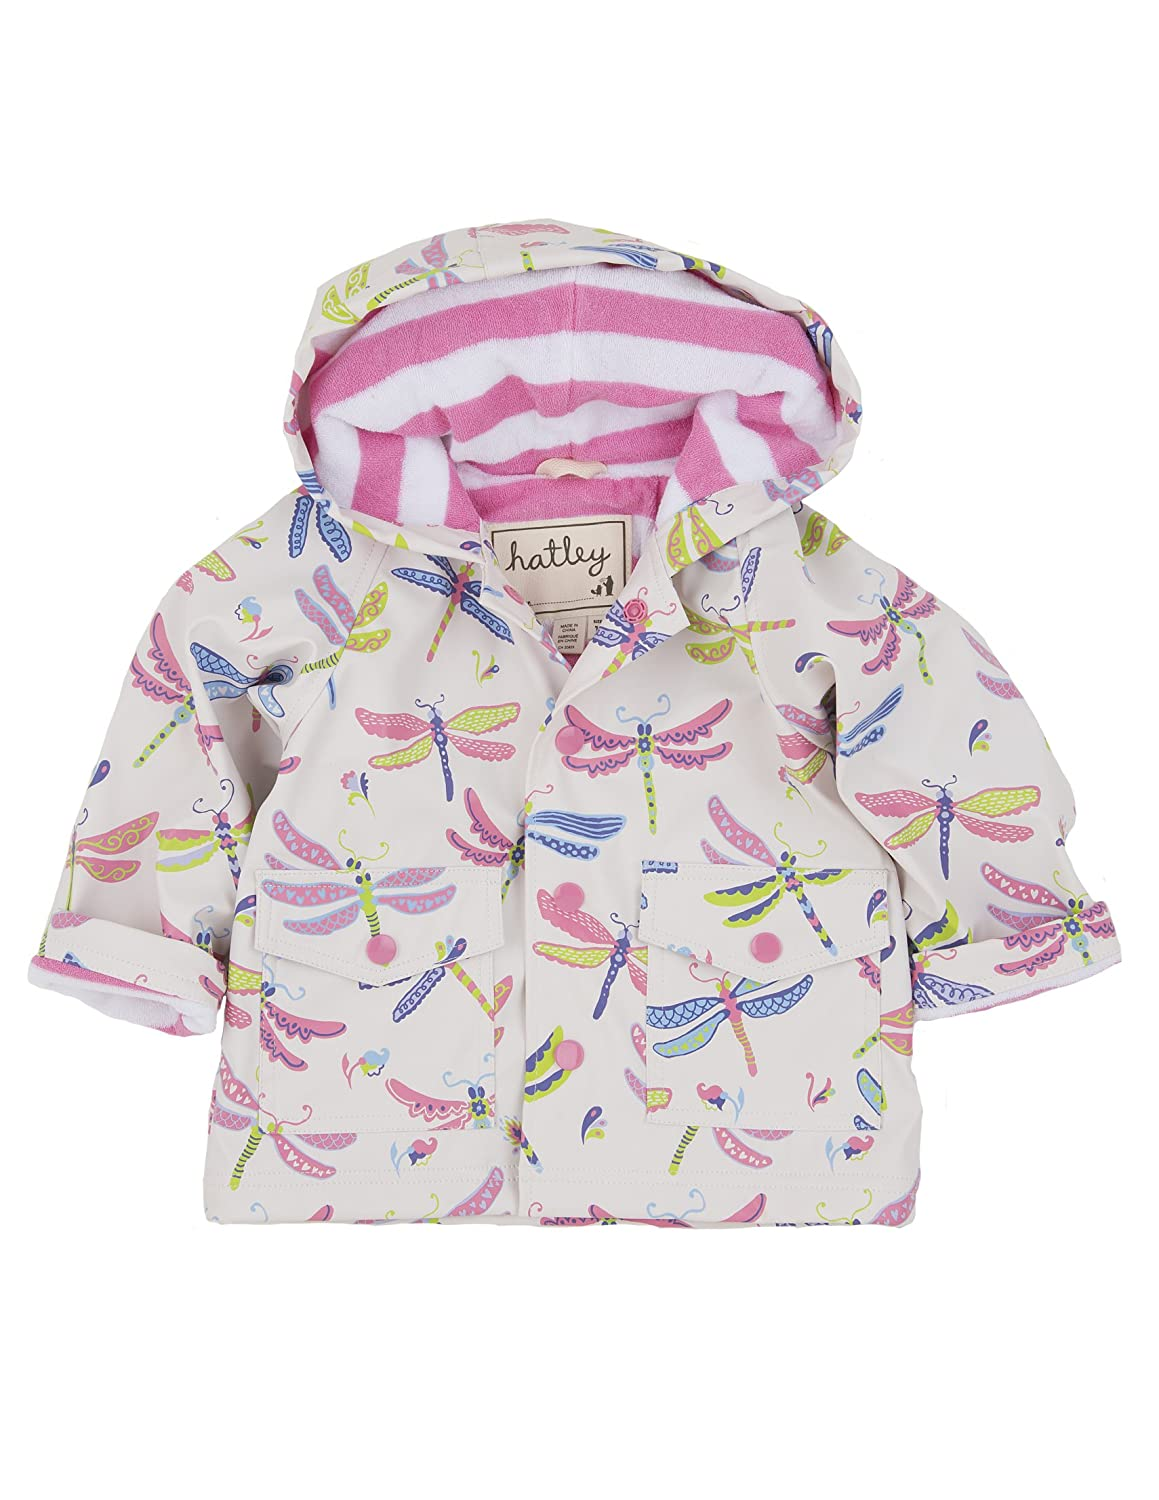 Hatley   Baby Baby Girls' Raincoat Dragonflies hatley зонт для девочки hatley